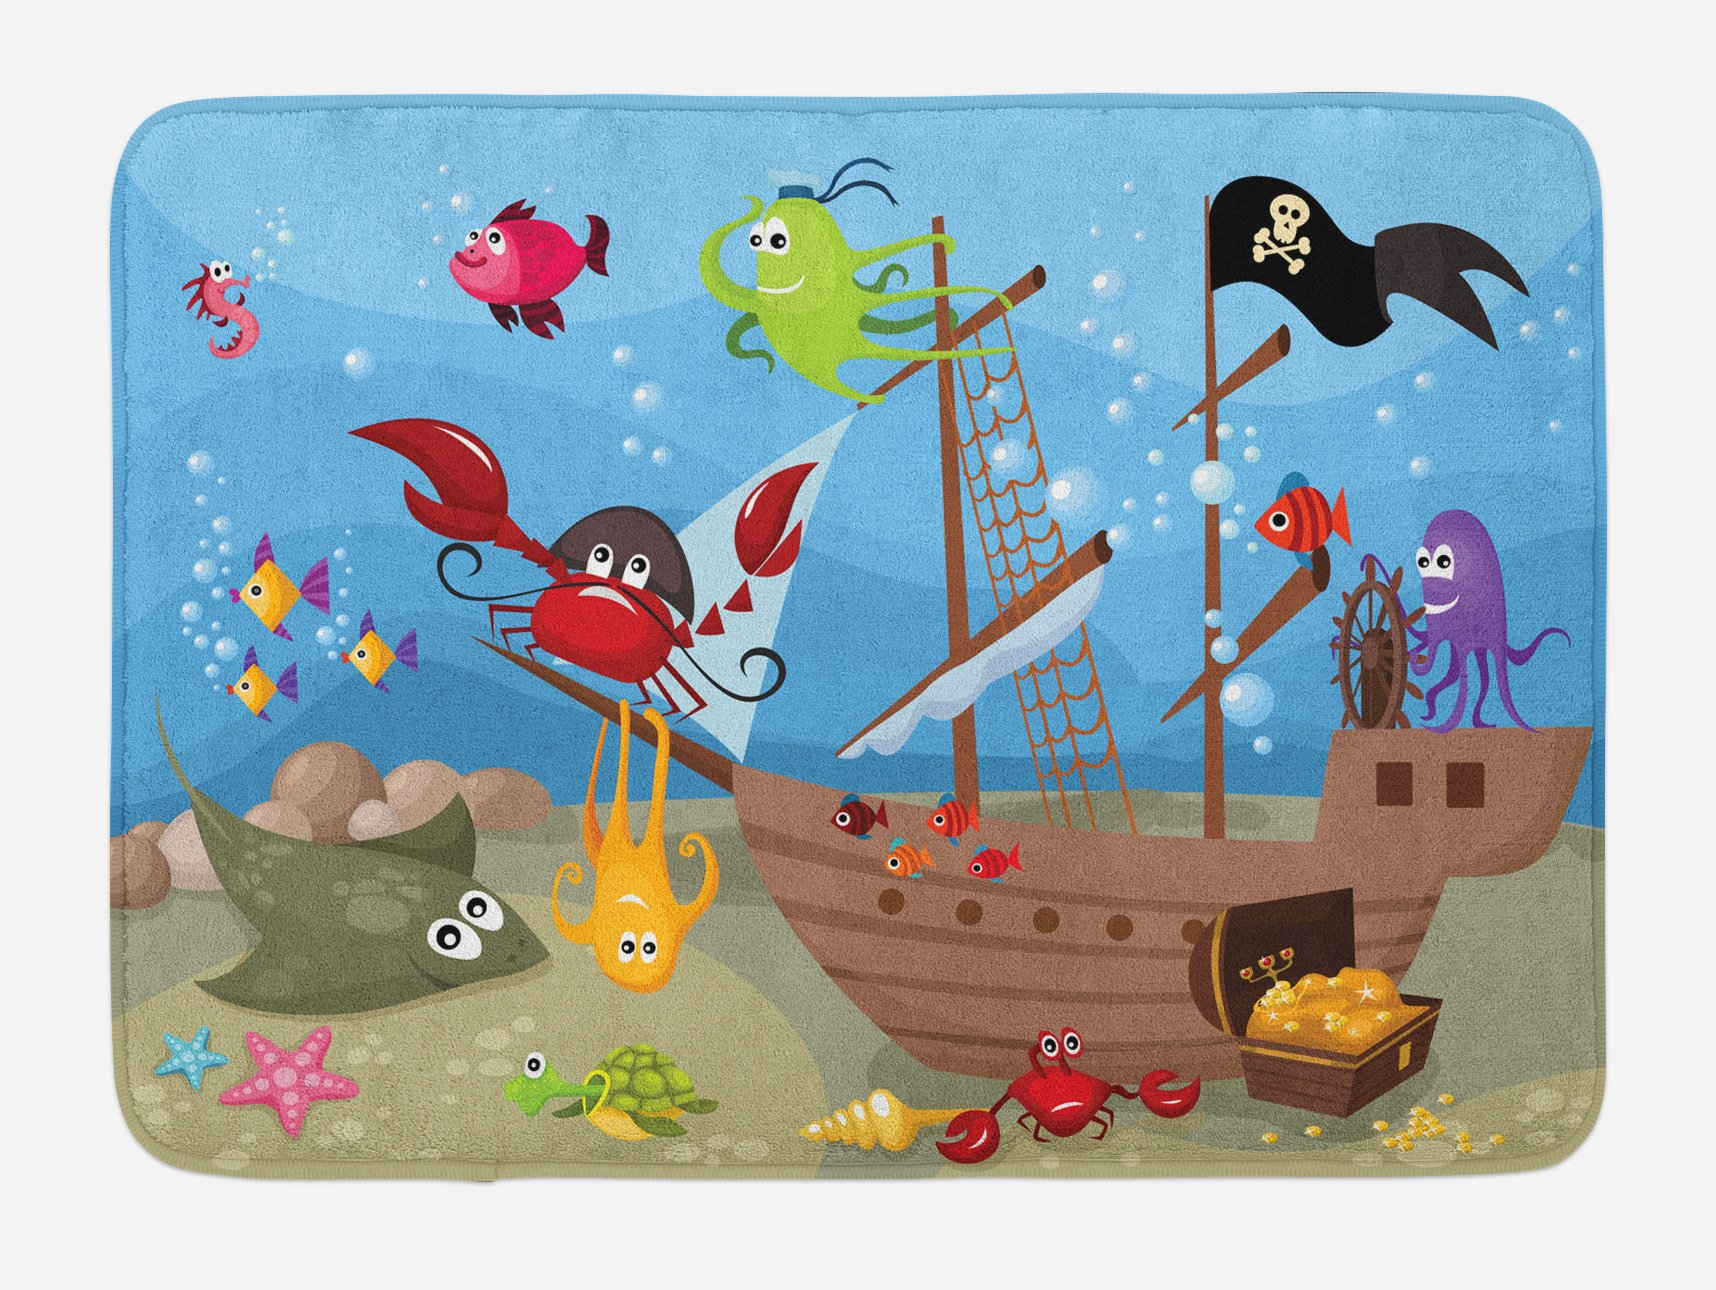 Ambesonne Pirate Bath Mat, Cartoon Ship Under the Sea Discovered by Sea Animals Treasure Chest Marine Adventure, Plush Bathroom Decor Mat with Non Slip Backing, 29.5 W X 17.5 W Inches, Multicolor